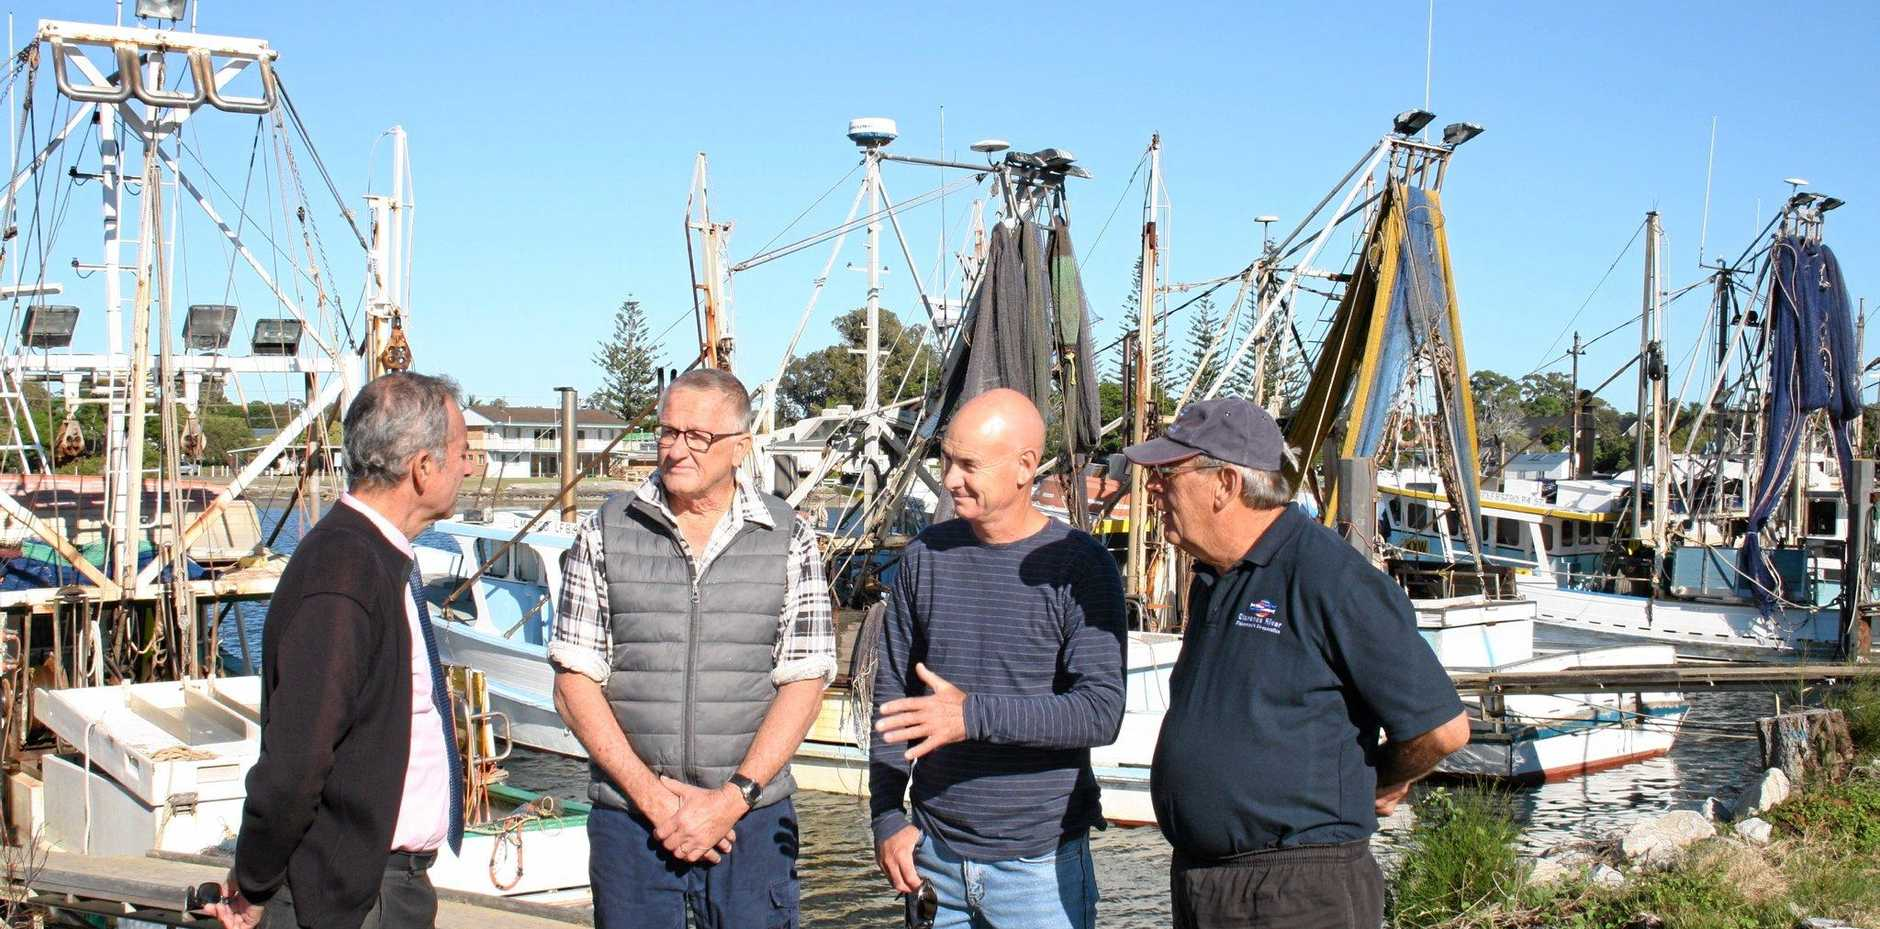 Member for Clarence Chris Gulaptis discusses the dredging works at Yamba boat harbour with longstanding members of the CRFC Donald Anderson and Graeme Williams and Chairman of the Clarence River Fishermen's Co-operative Board Don Mowbray.